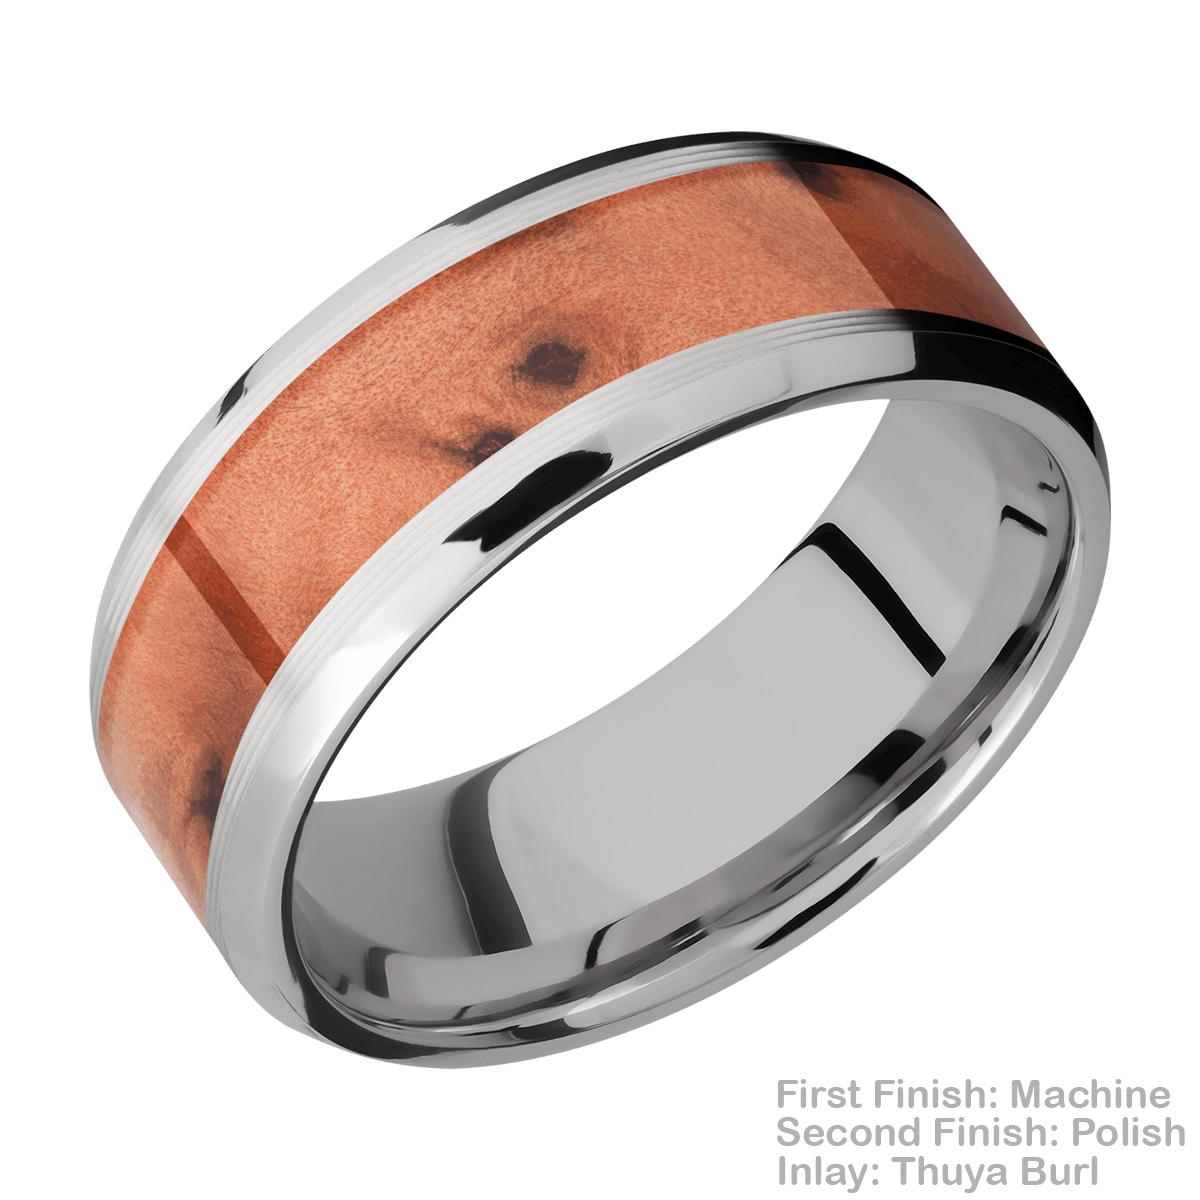 Lashbrook CC8B15(NS)/HARDWOOD Cobalt Chrome Wedding Ring or Band Alternative View 8